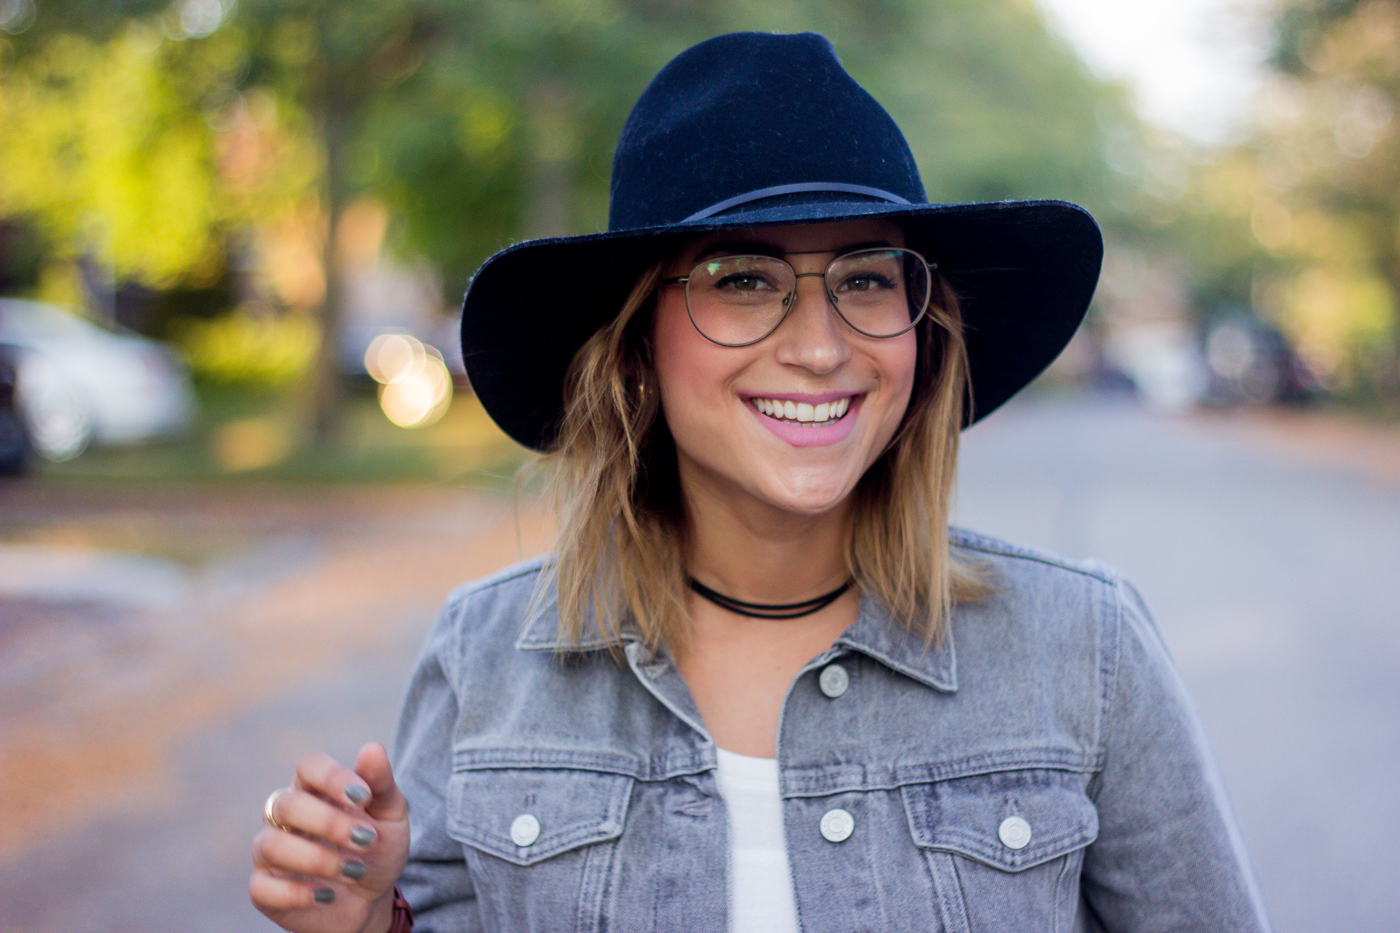 Toronto-based lifestyle and fashion blogger, Jackie at Something About That is sharing how to shop for glasses online and have them look good on you